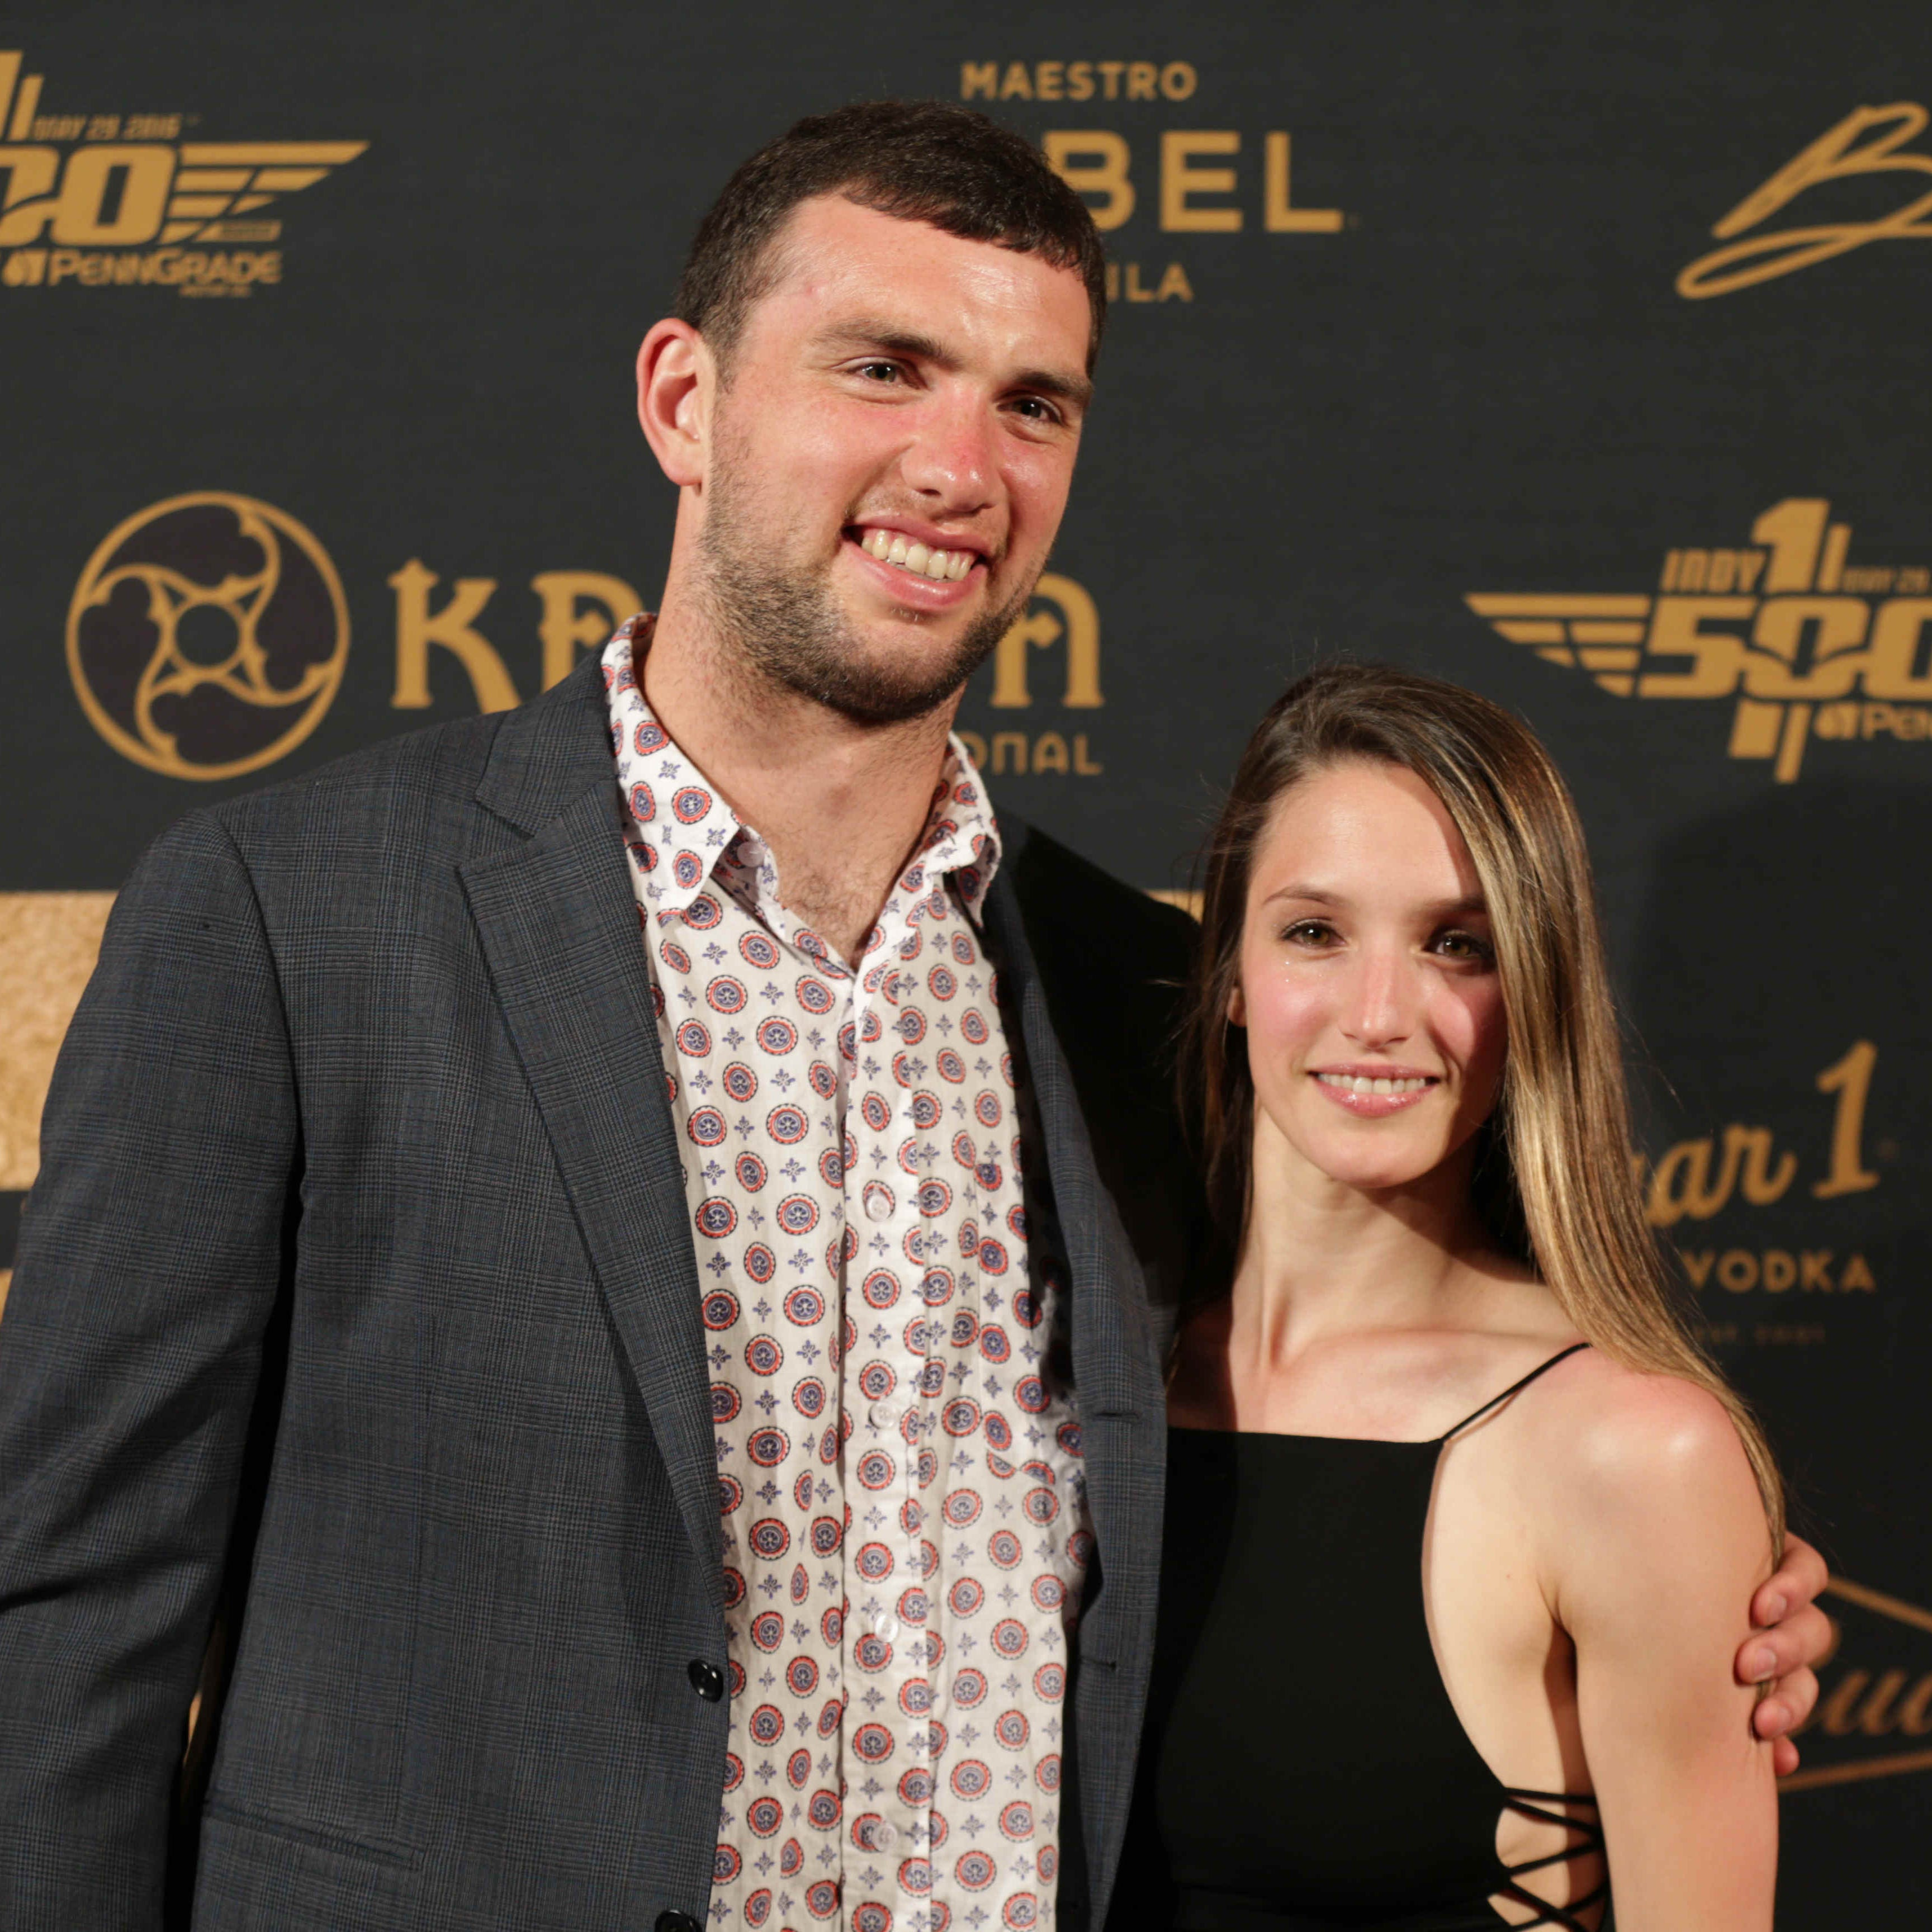 Colts QB Andrew Luck on marriage to Nicole Pechanec